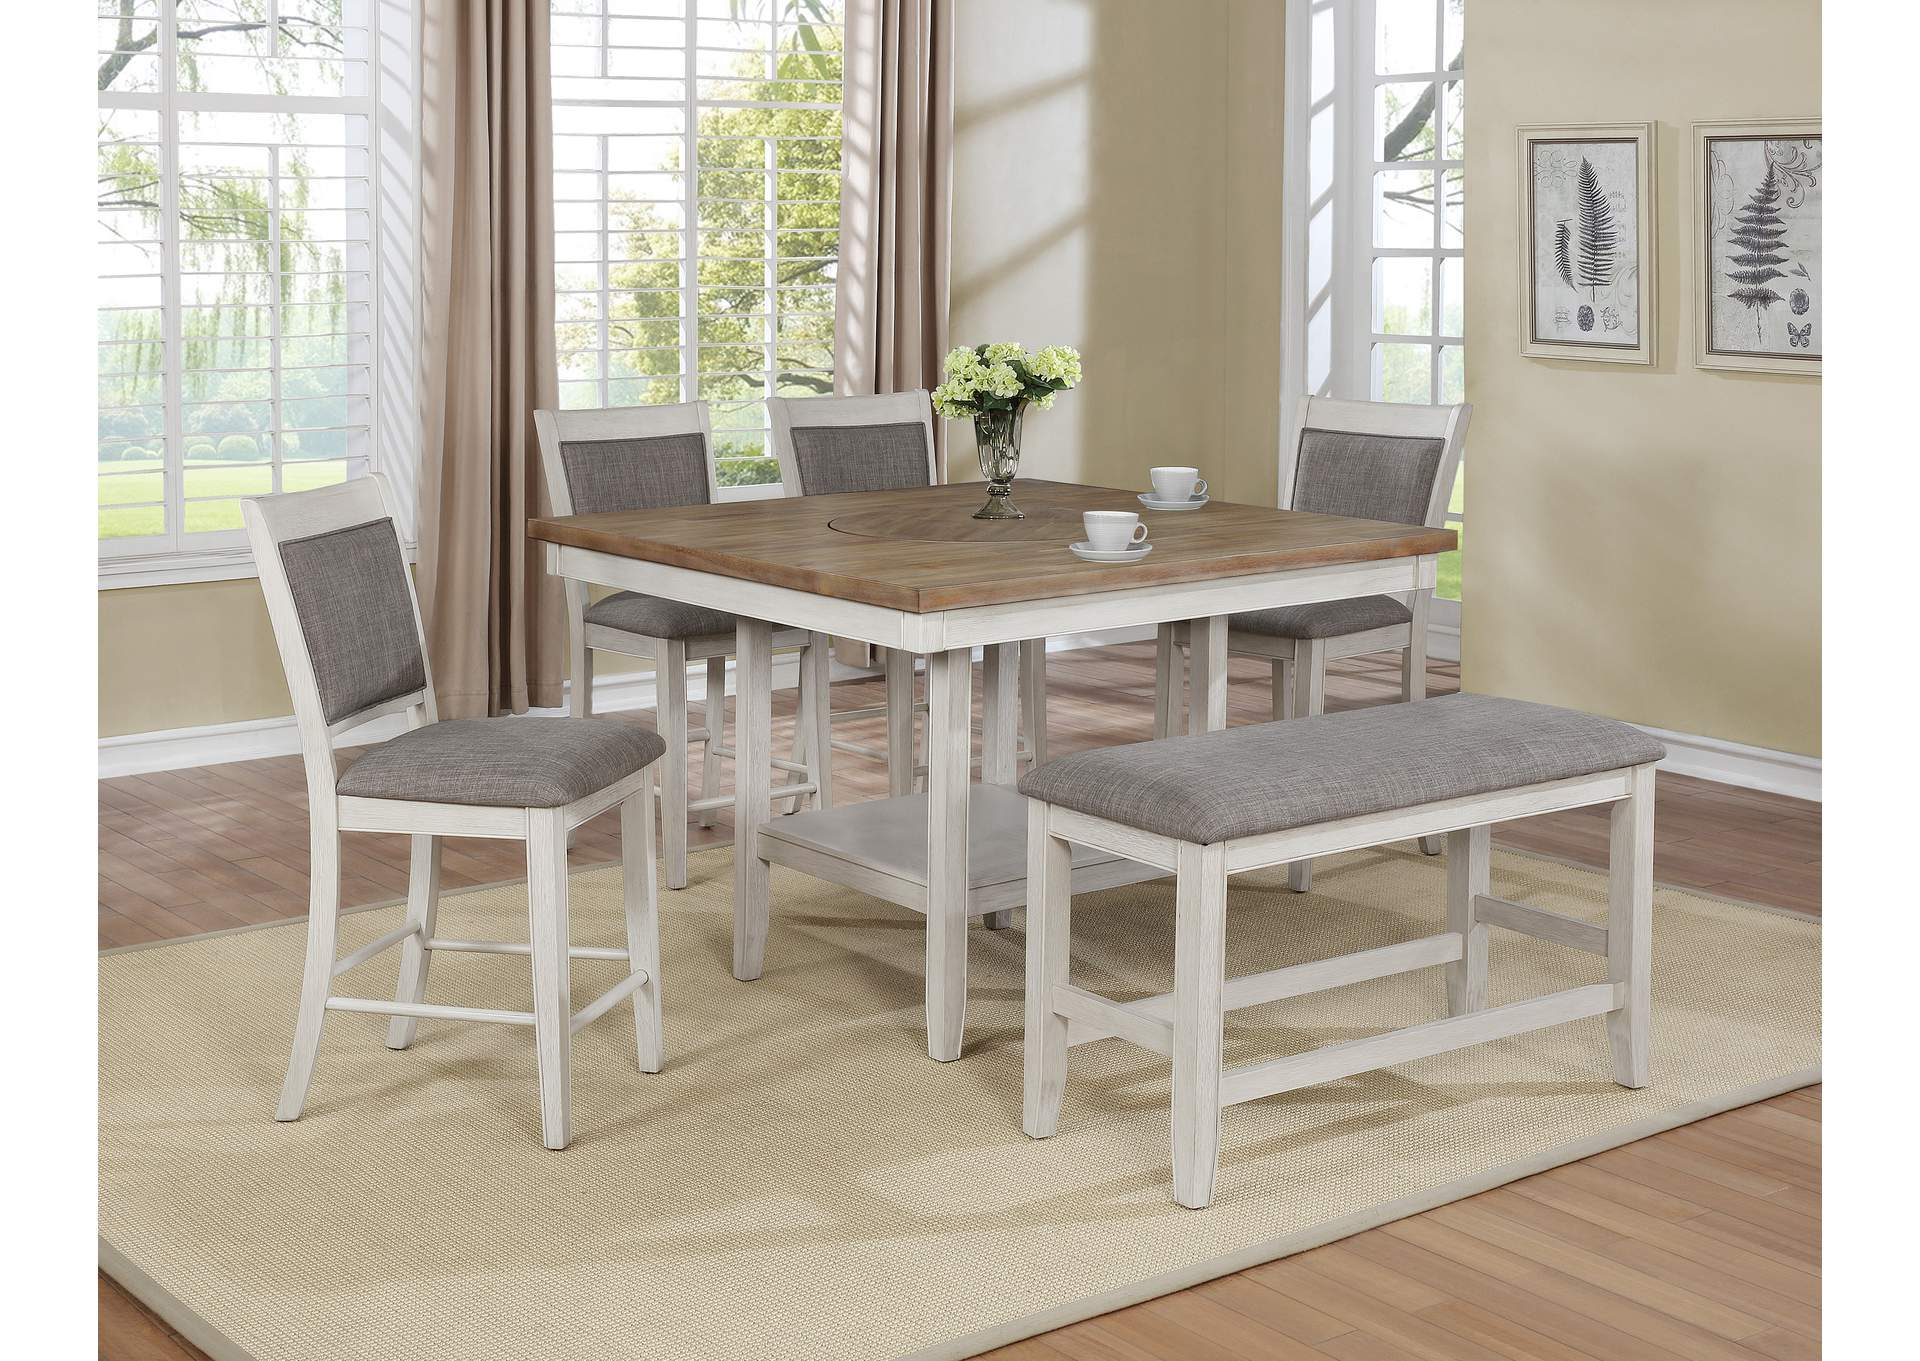 Fulton White 5 Piece Dining Table Set (Dining Table w/4 Side Chairs),Crown Mark